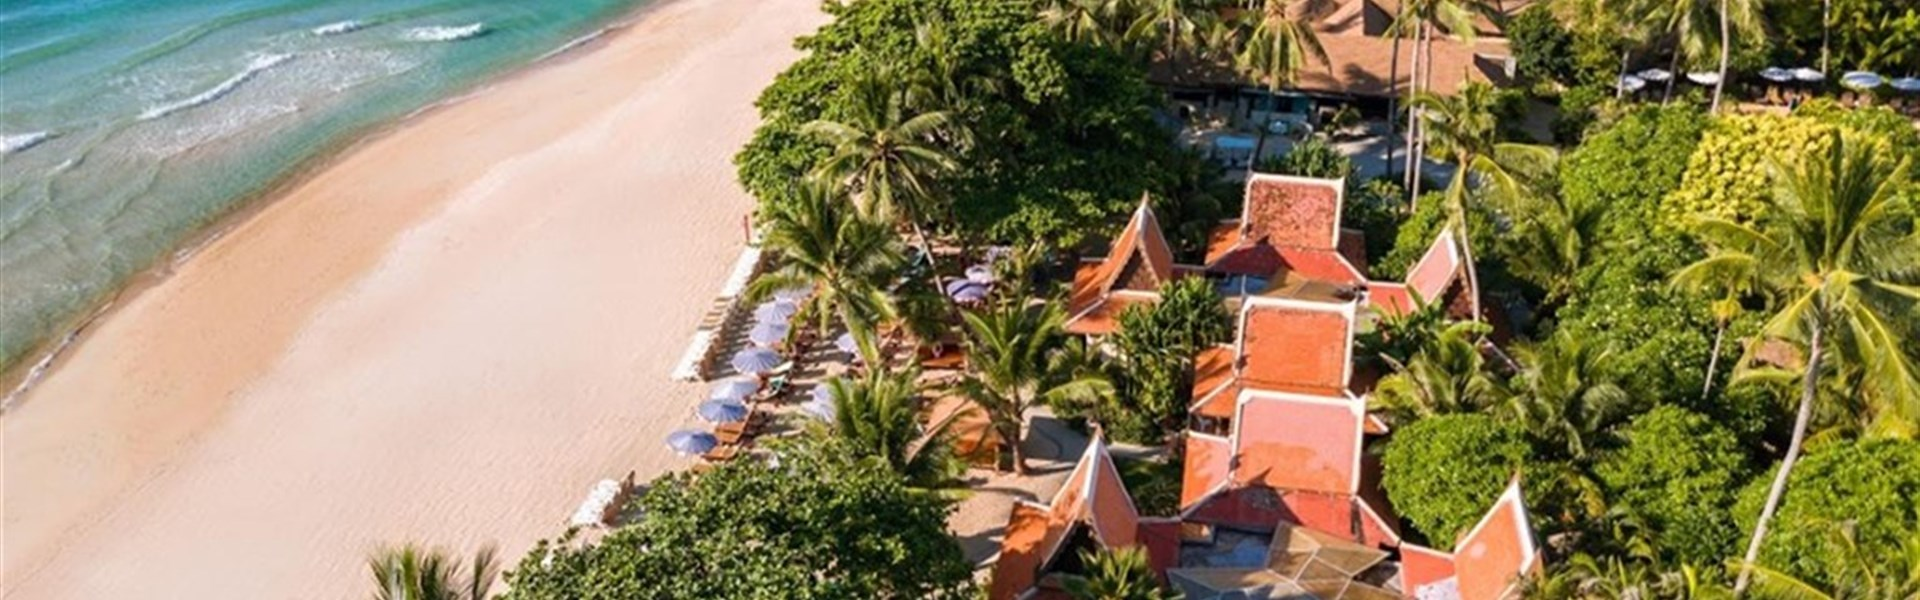 Marco Polo - Fair House Beach Resort Koh Samui -